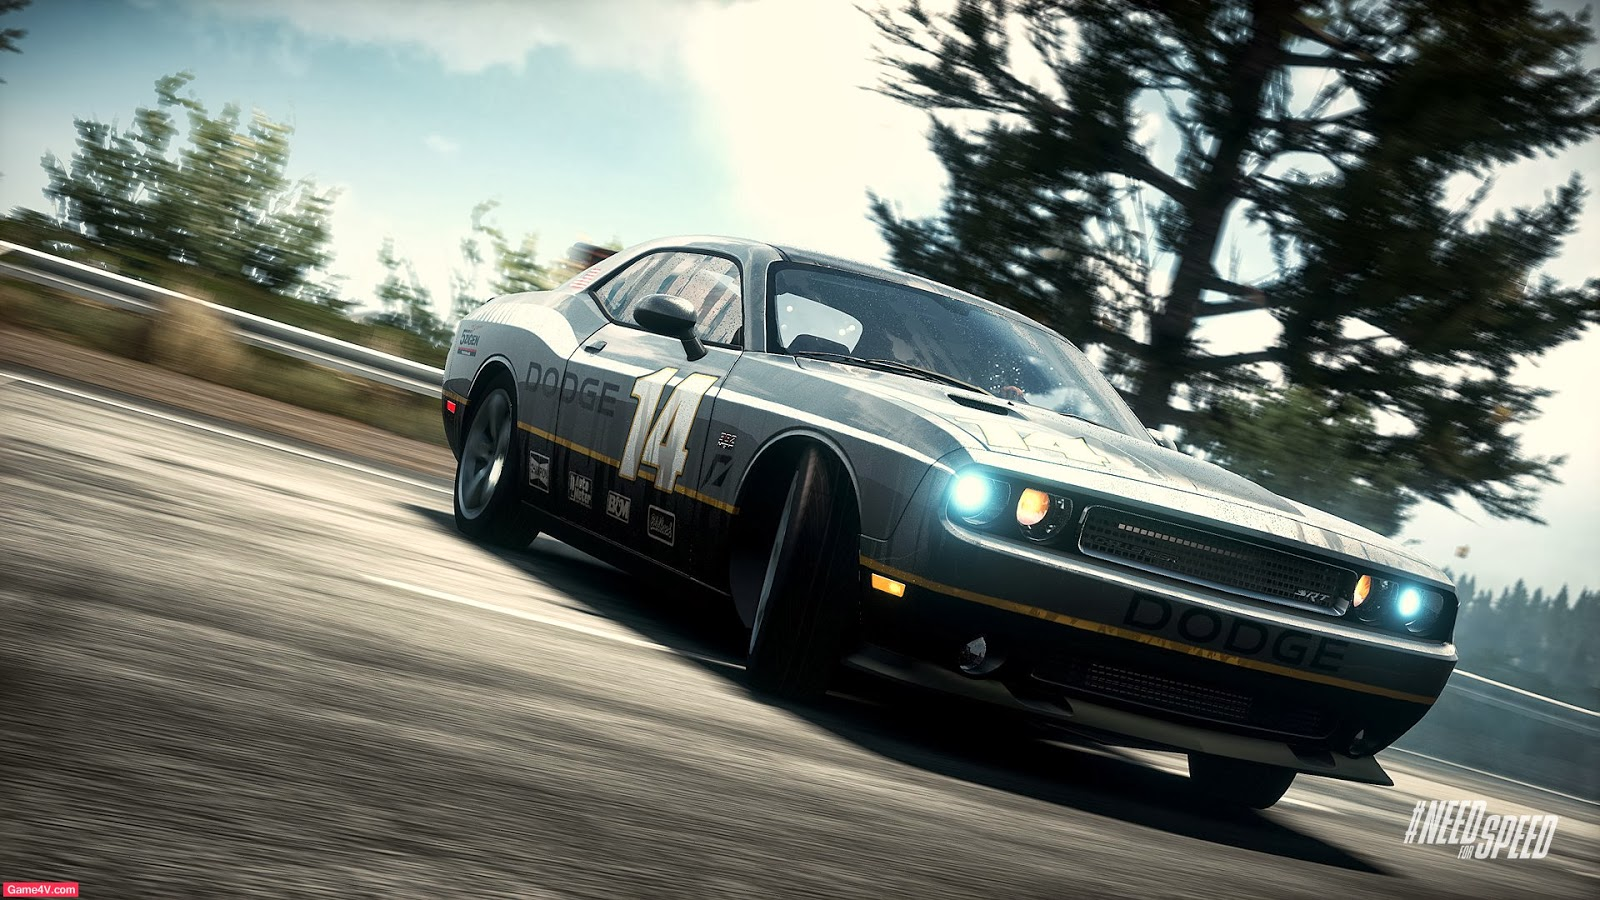 Need For Speed Download PC - install-game.com